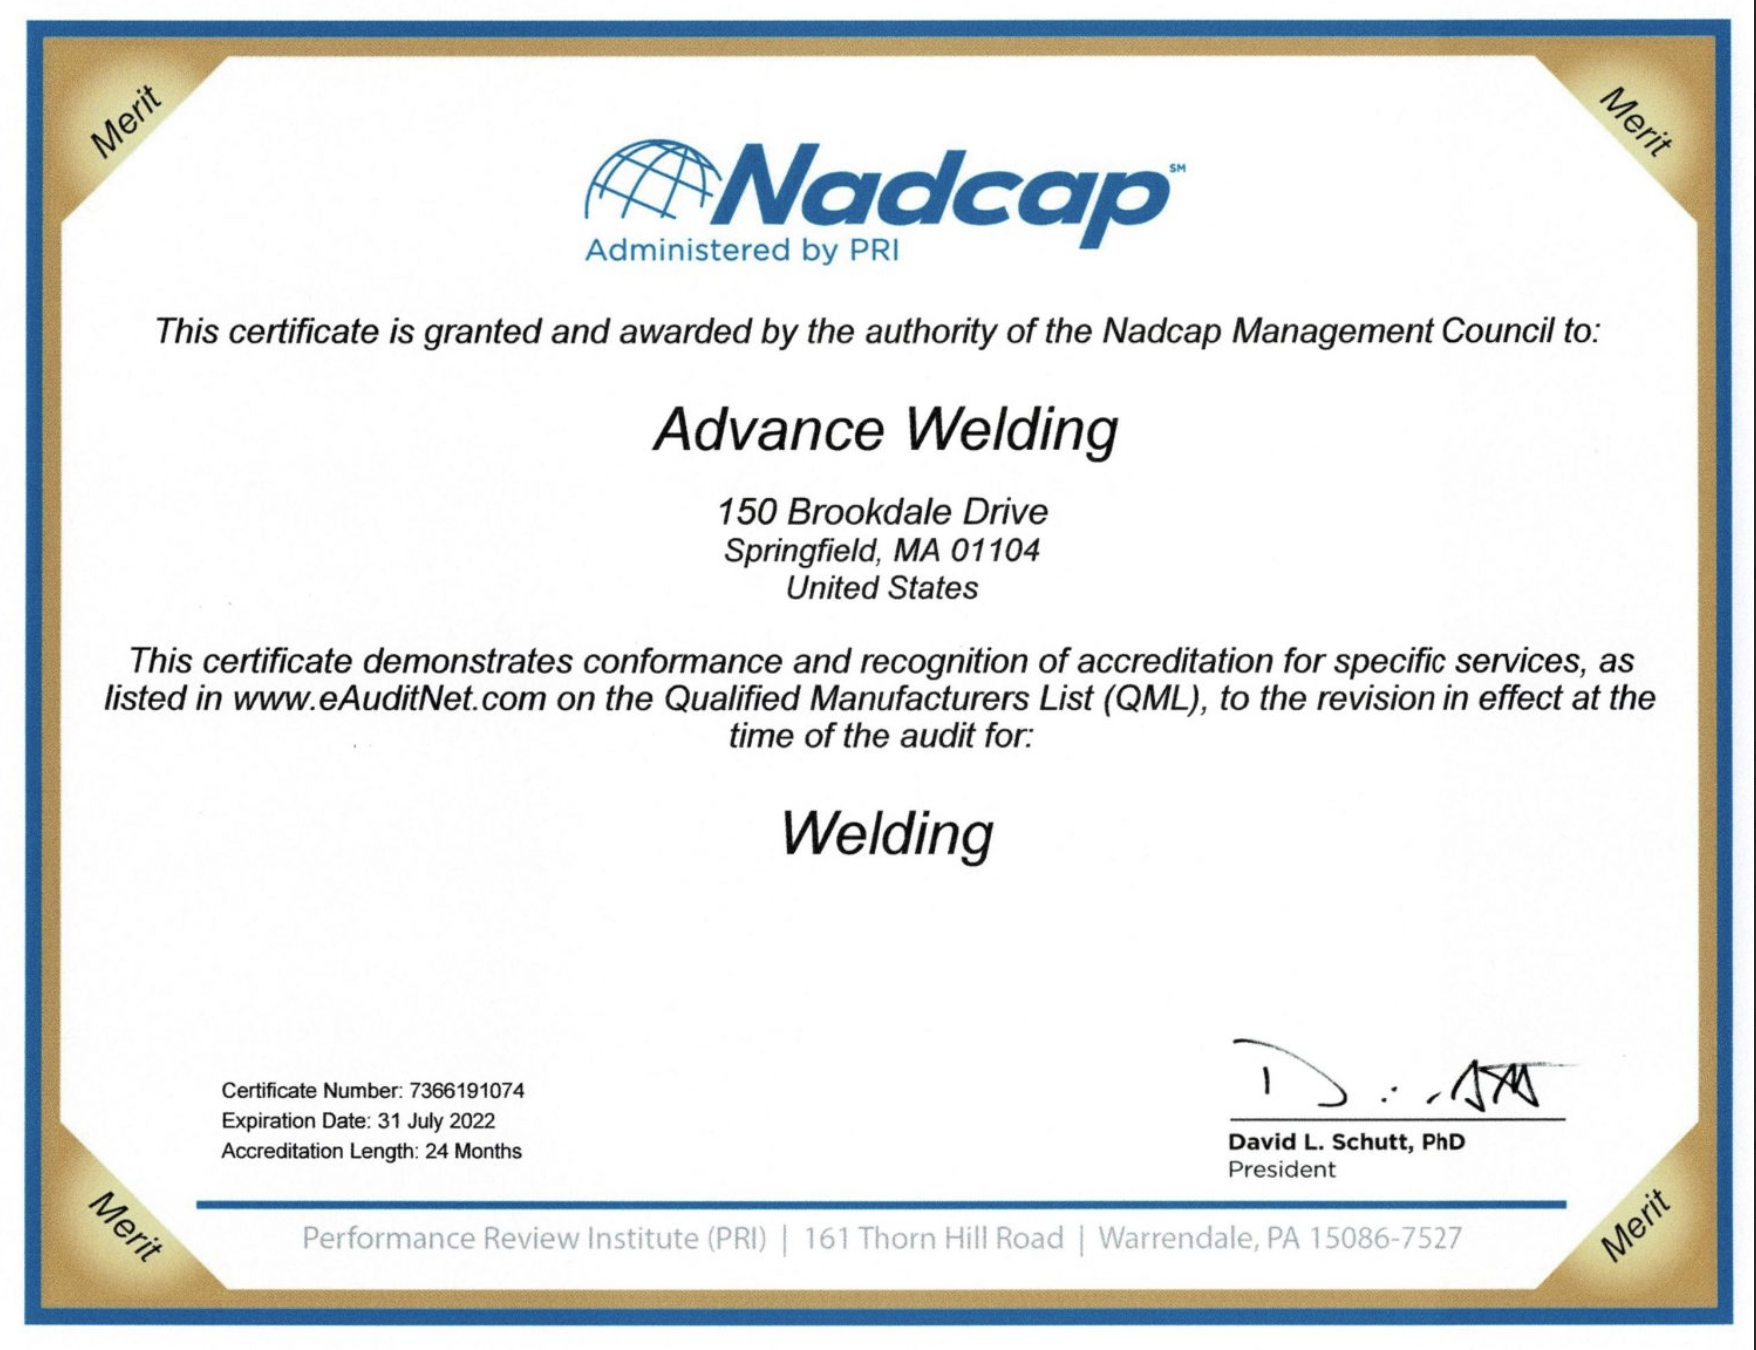 Nadcap Re-accreditation During a Pandemic